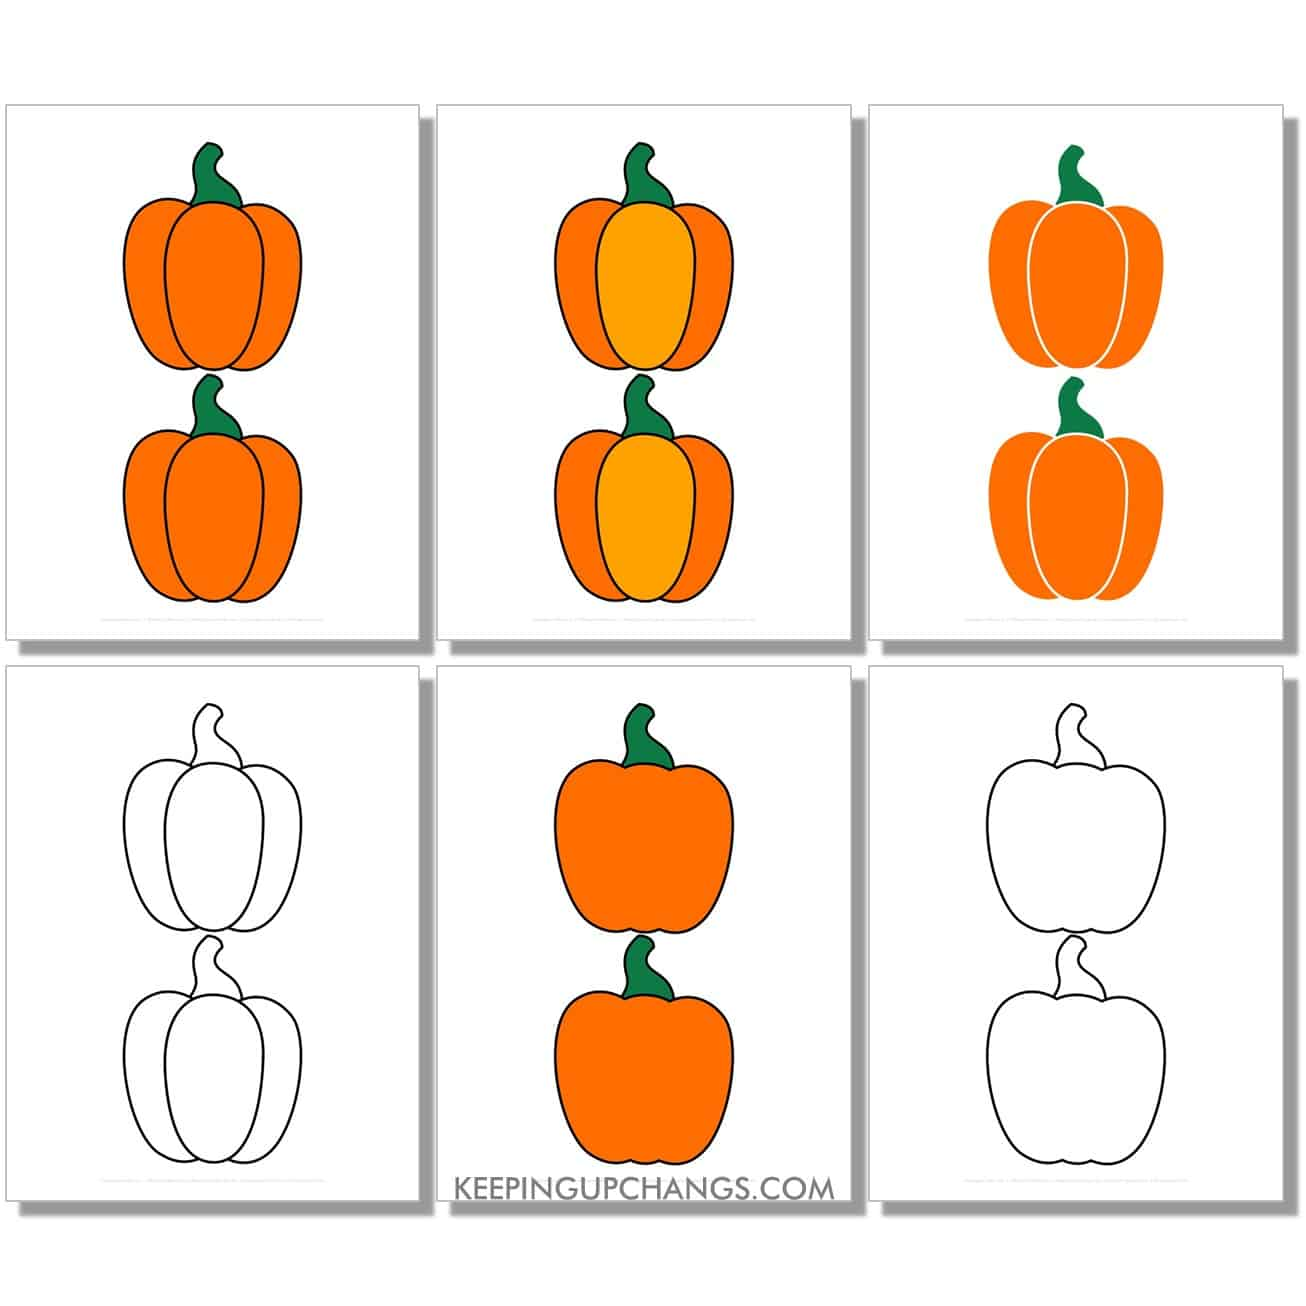 free medium small pumpkin in color, black and white, silhouette, 2 to a page.